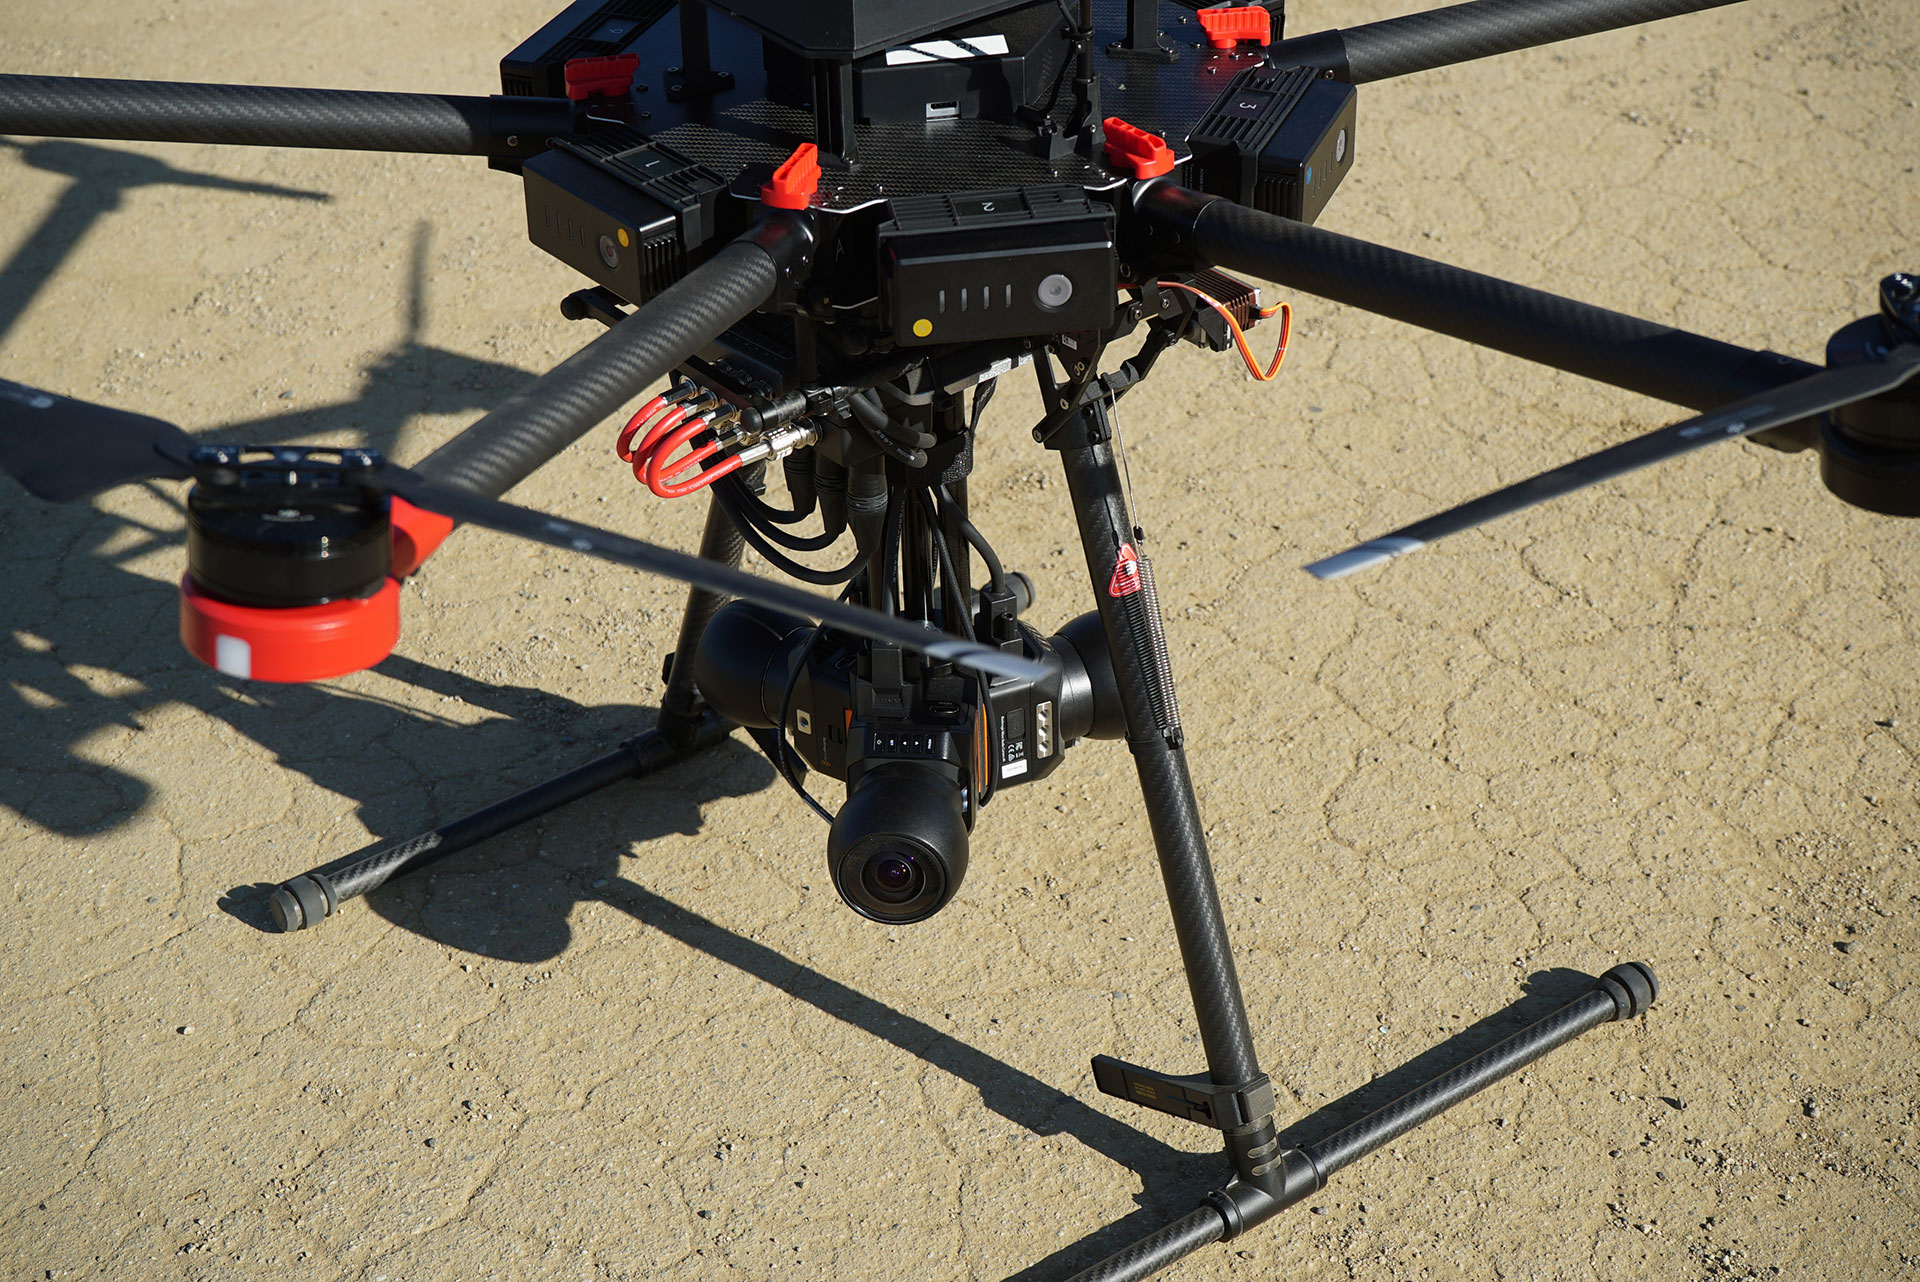 Broadcast quality 6K live VR Drone launched